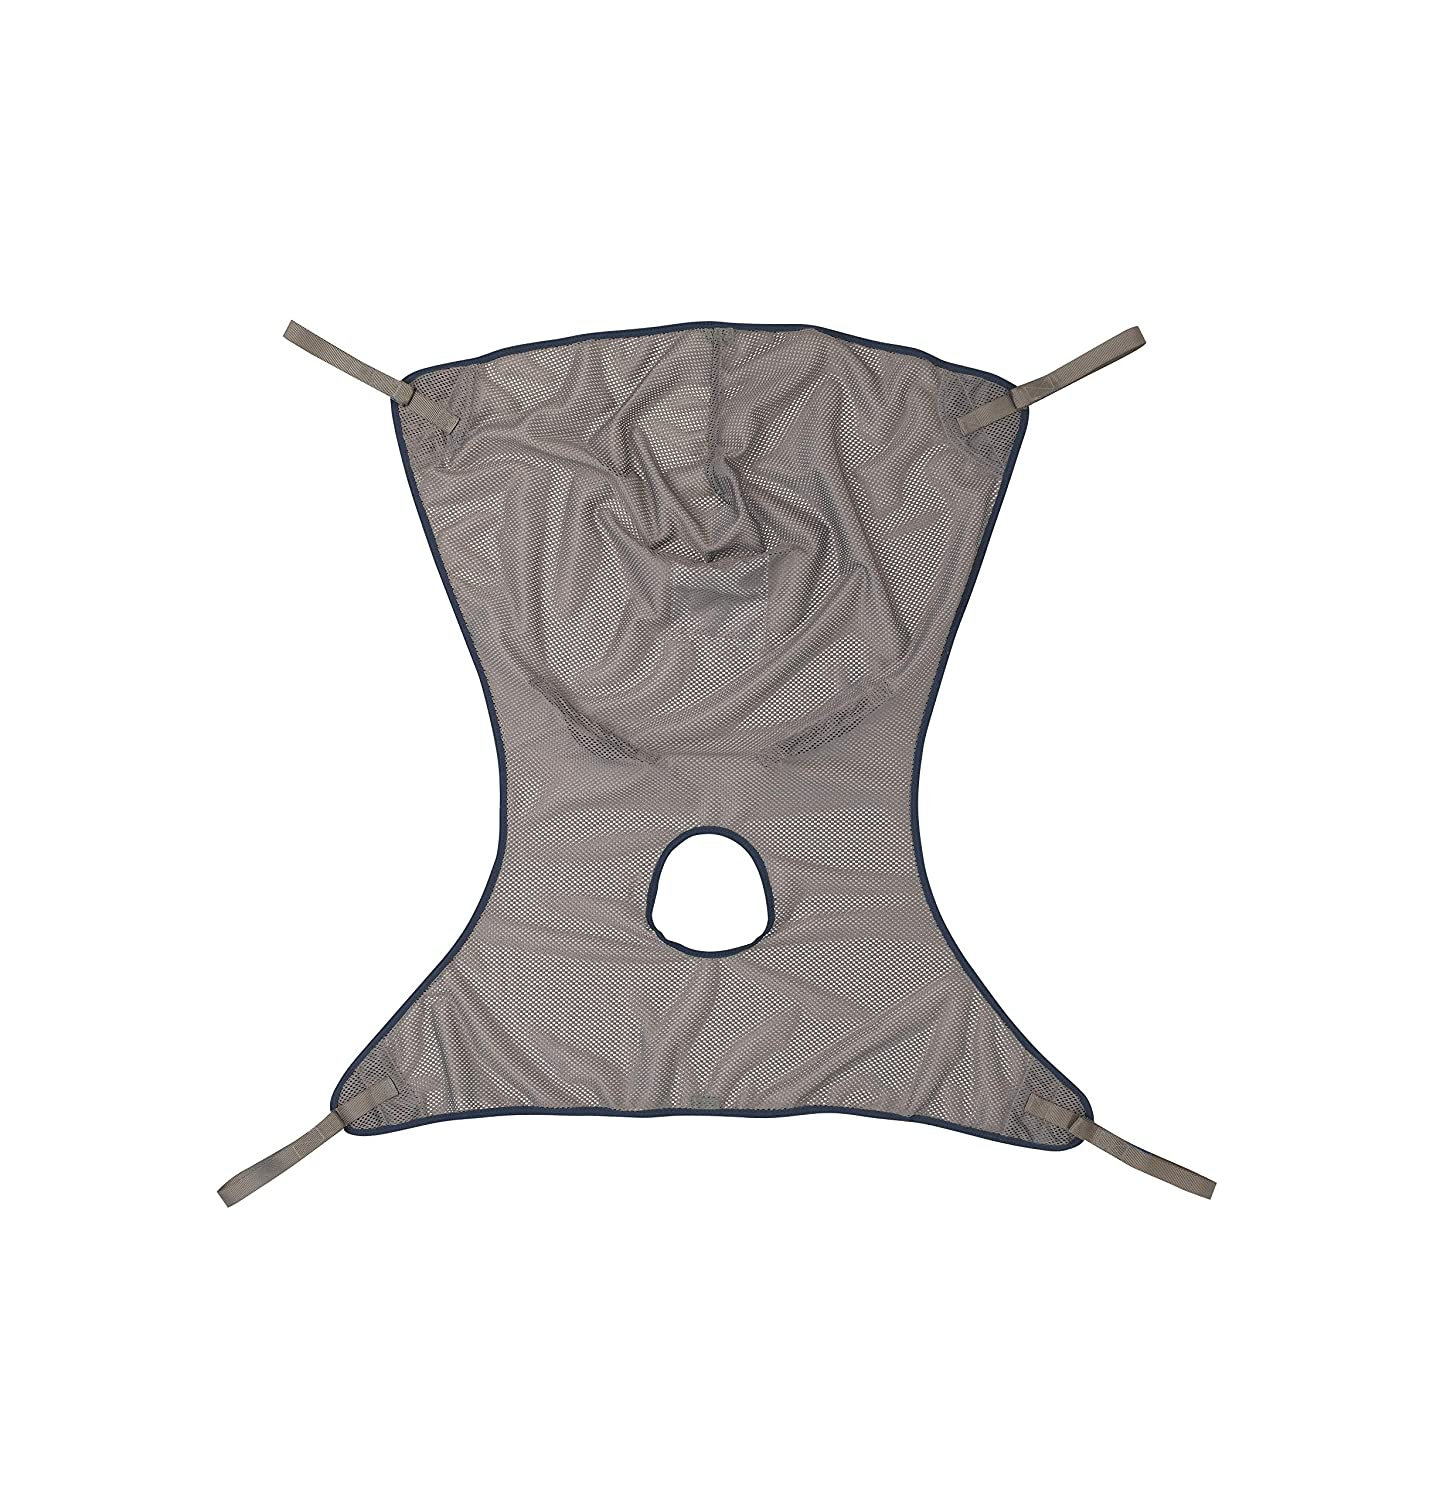 Invacare Premier Comfort Full Body Sling with Commode Opening for Patient Lifts, 500 lb. Weight Capacity, Net Fabric, Small, 2451097